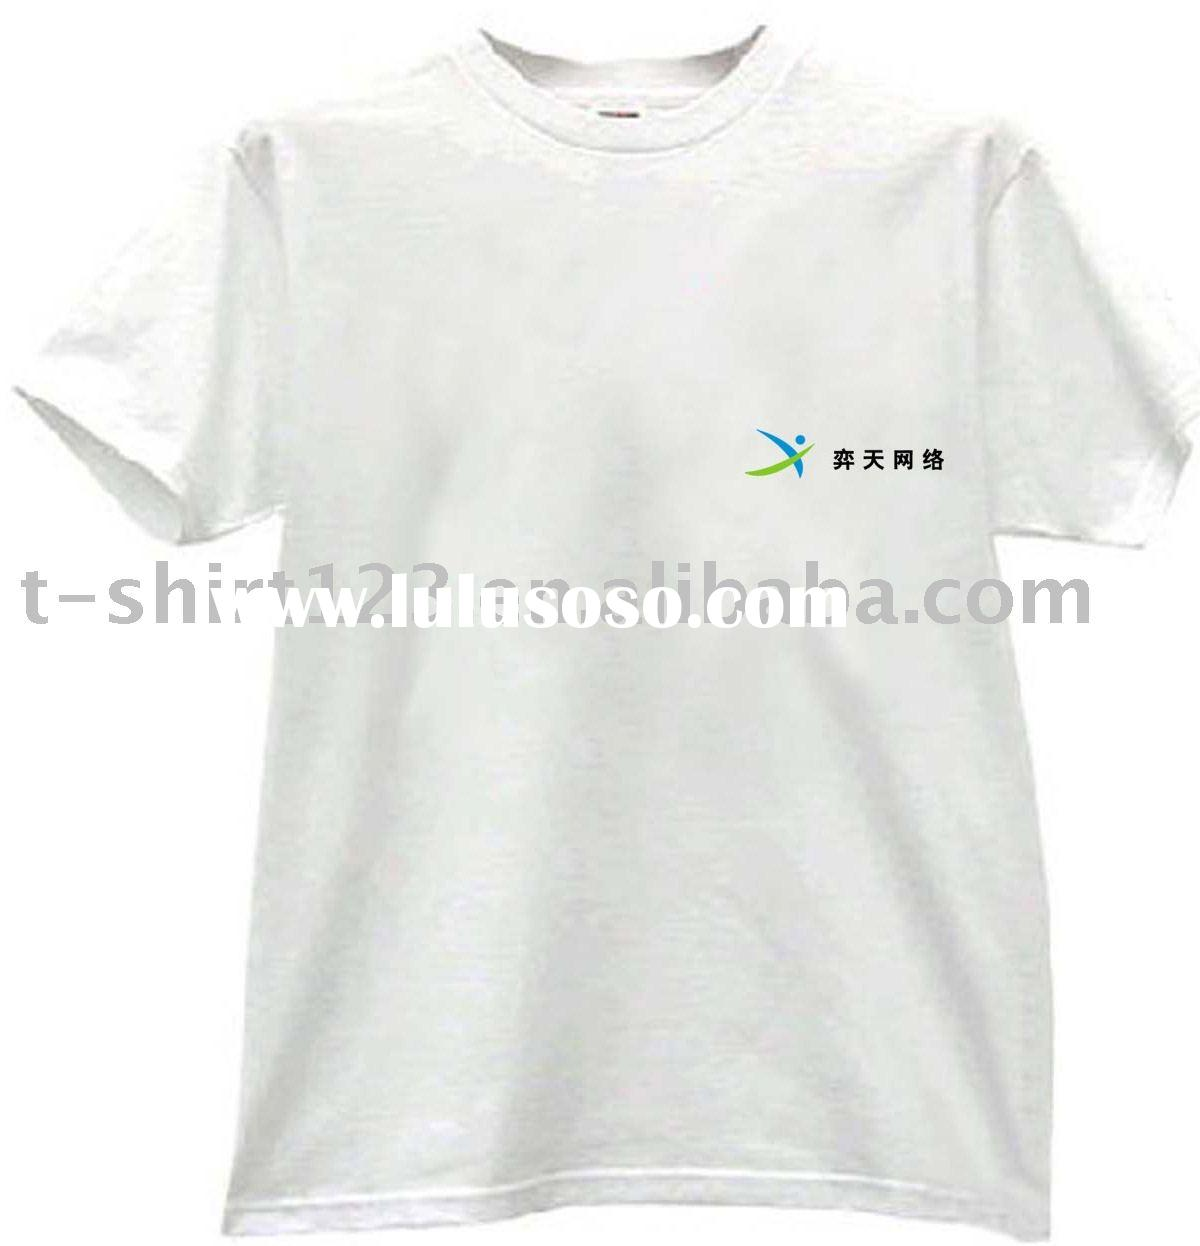 Cheap t shirt print cheap t shirt print manufacturers in for Cheap print t shirts